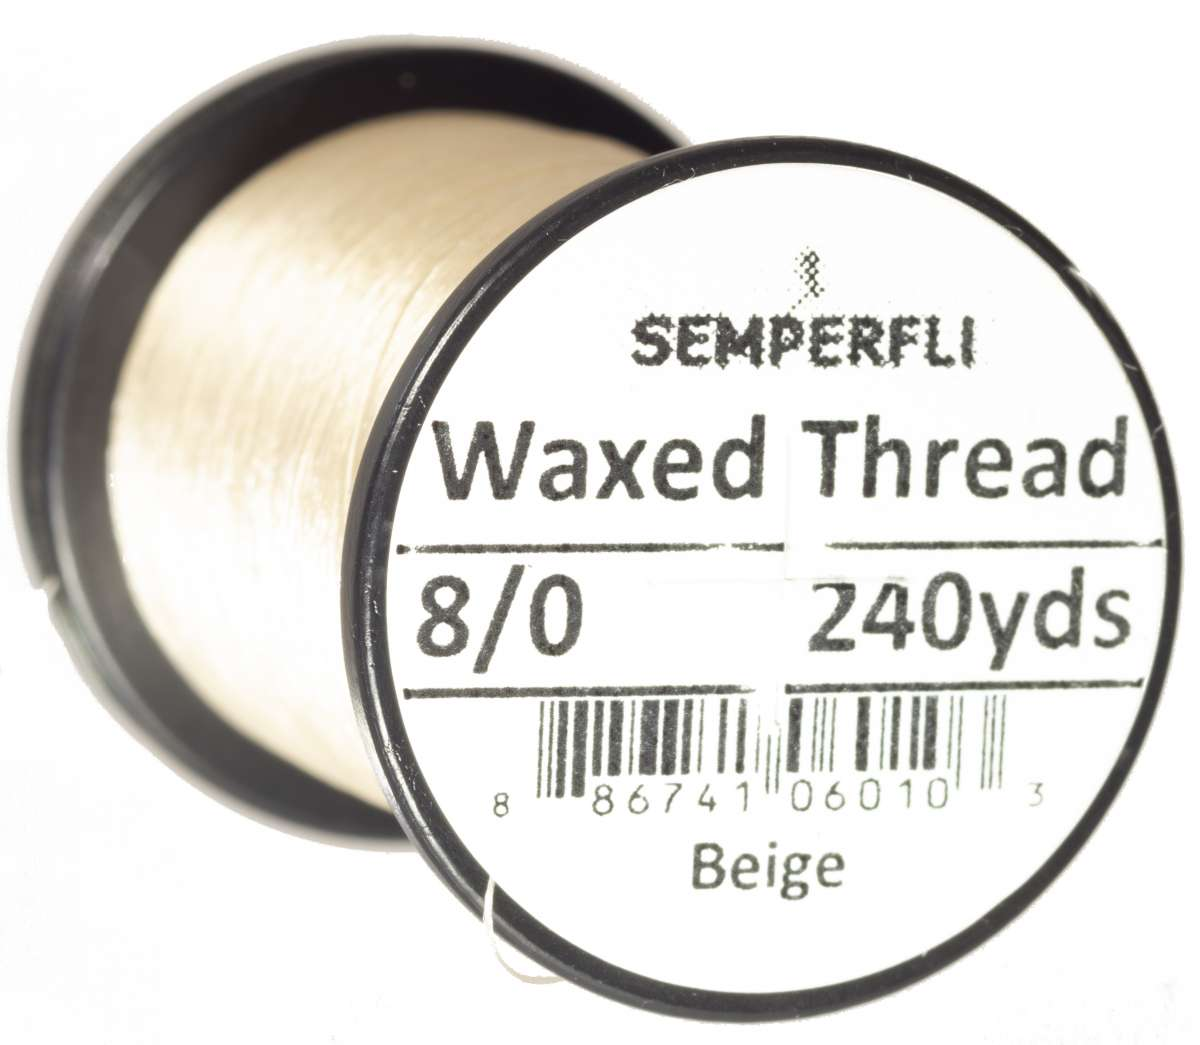 8/0 Classic Waxed Thread Beige Sem-0400-0782